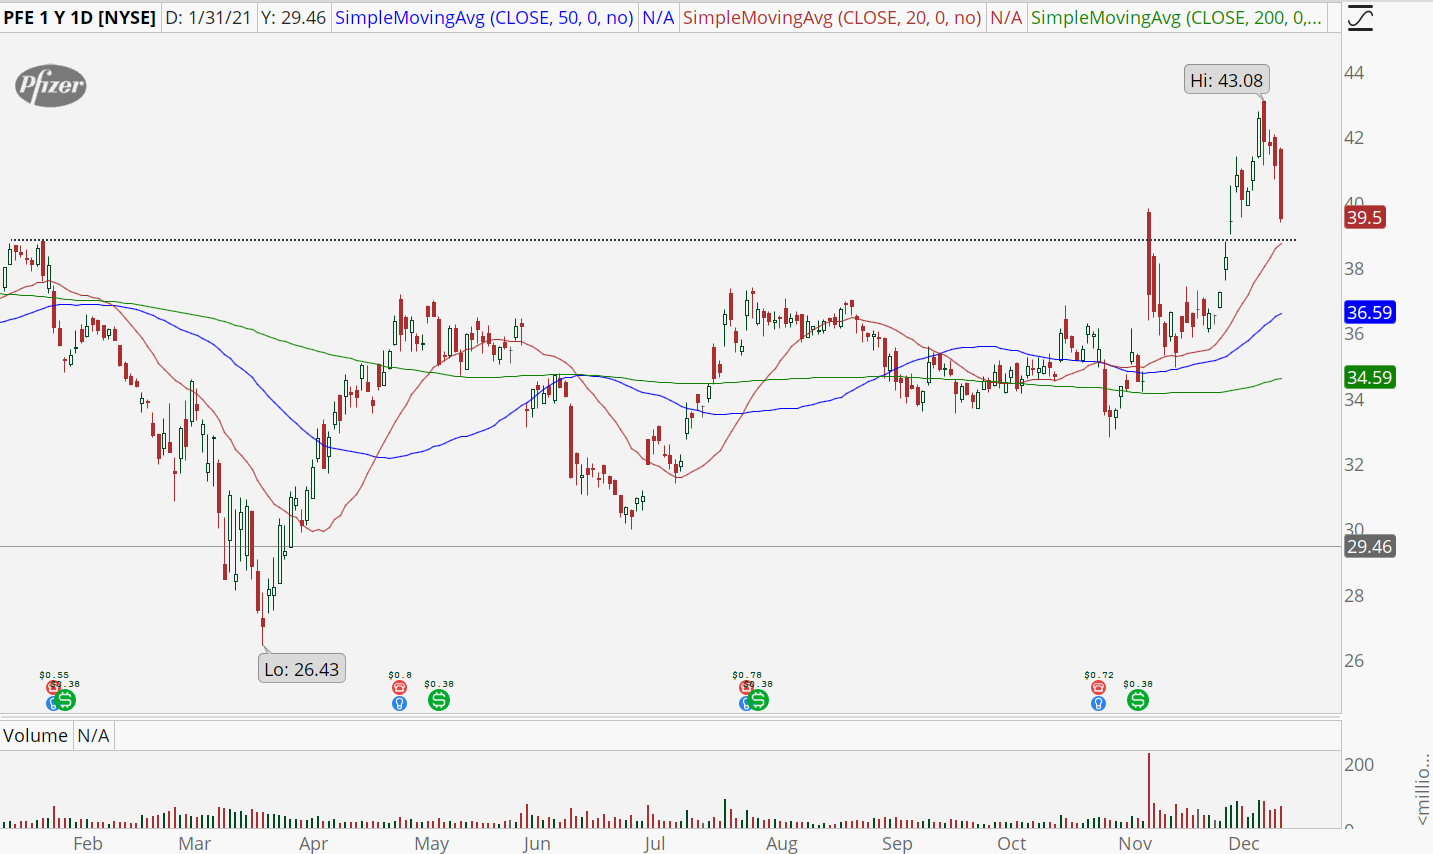 Pfizer (PFE) daily chart with bull retracement